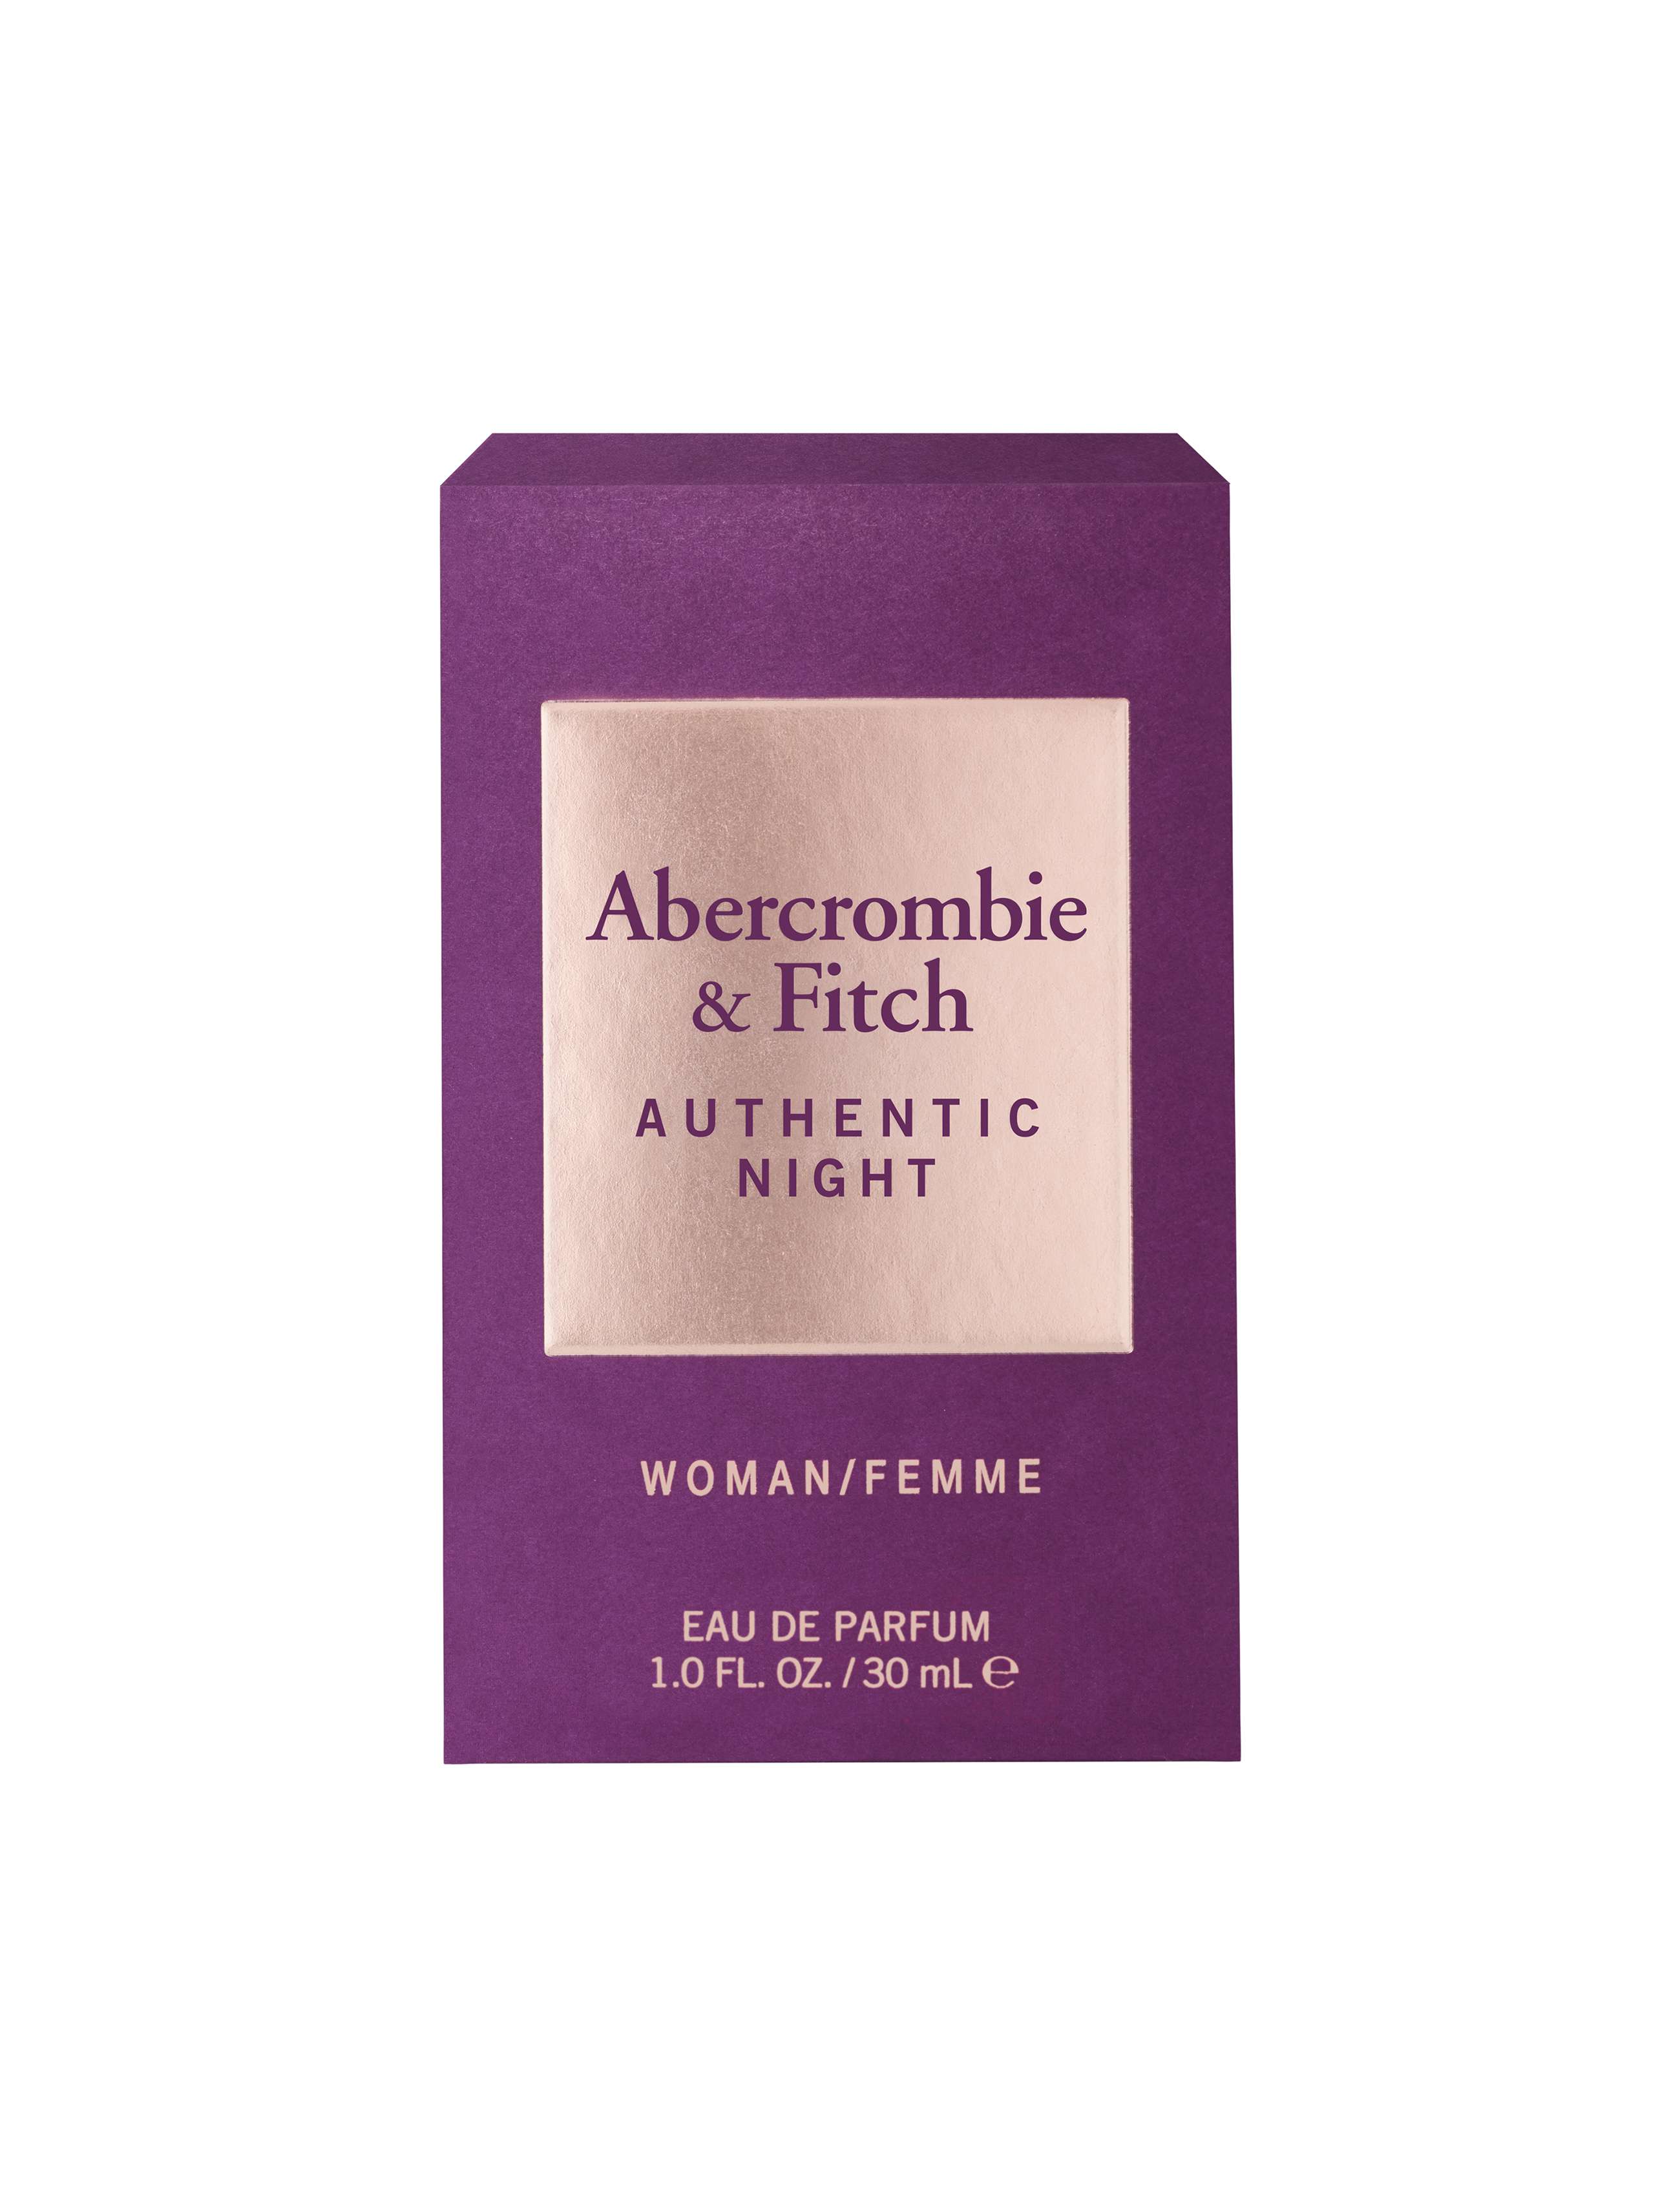 Abercrombie & Fitch Authentic Night Femme EDT, 30 ml